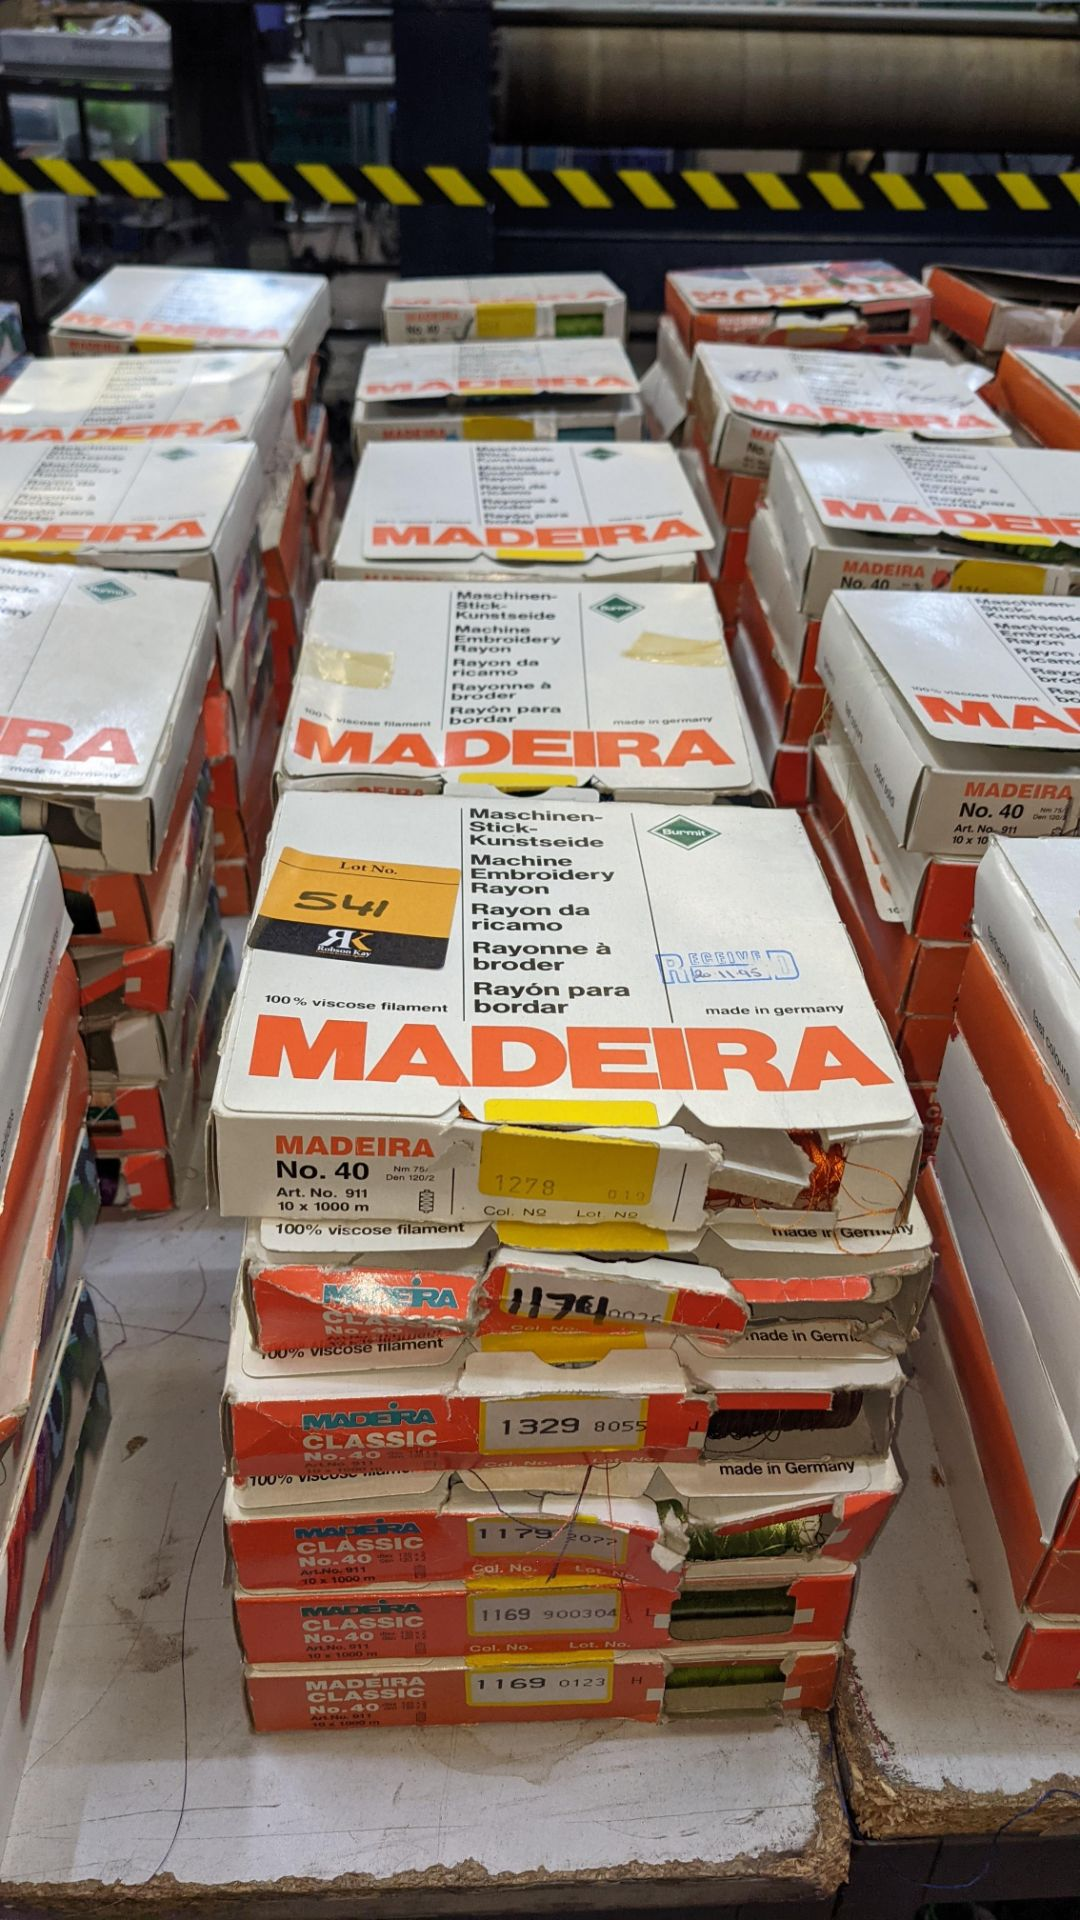 30 boxes of Madeira Classic No. 40 rayon embroidery thread - Image 2 of 12